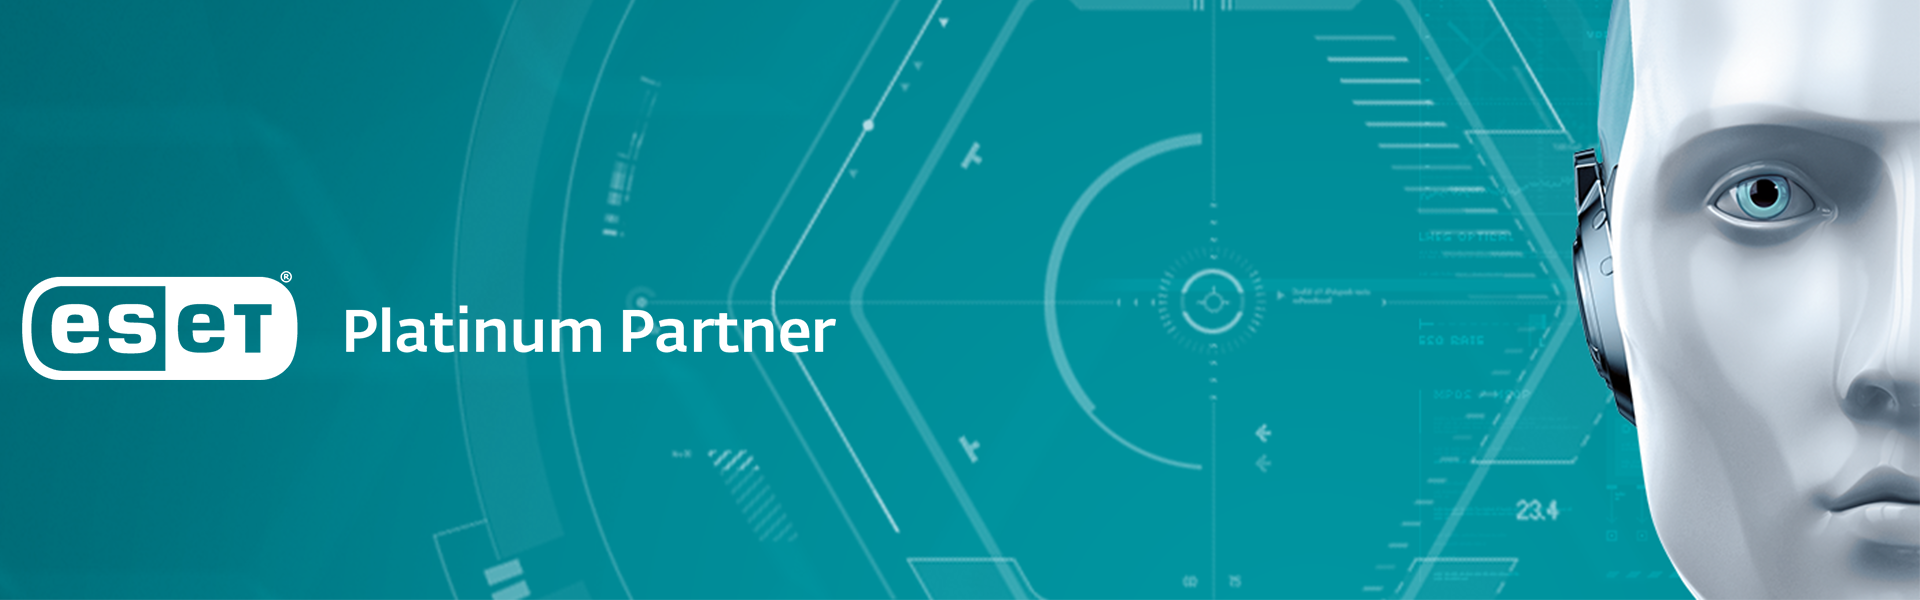 banner ESET ANTIMALWARE BUSINESS SOLUTION PARTNER -voorheen NOD32